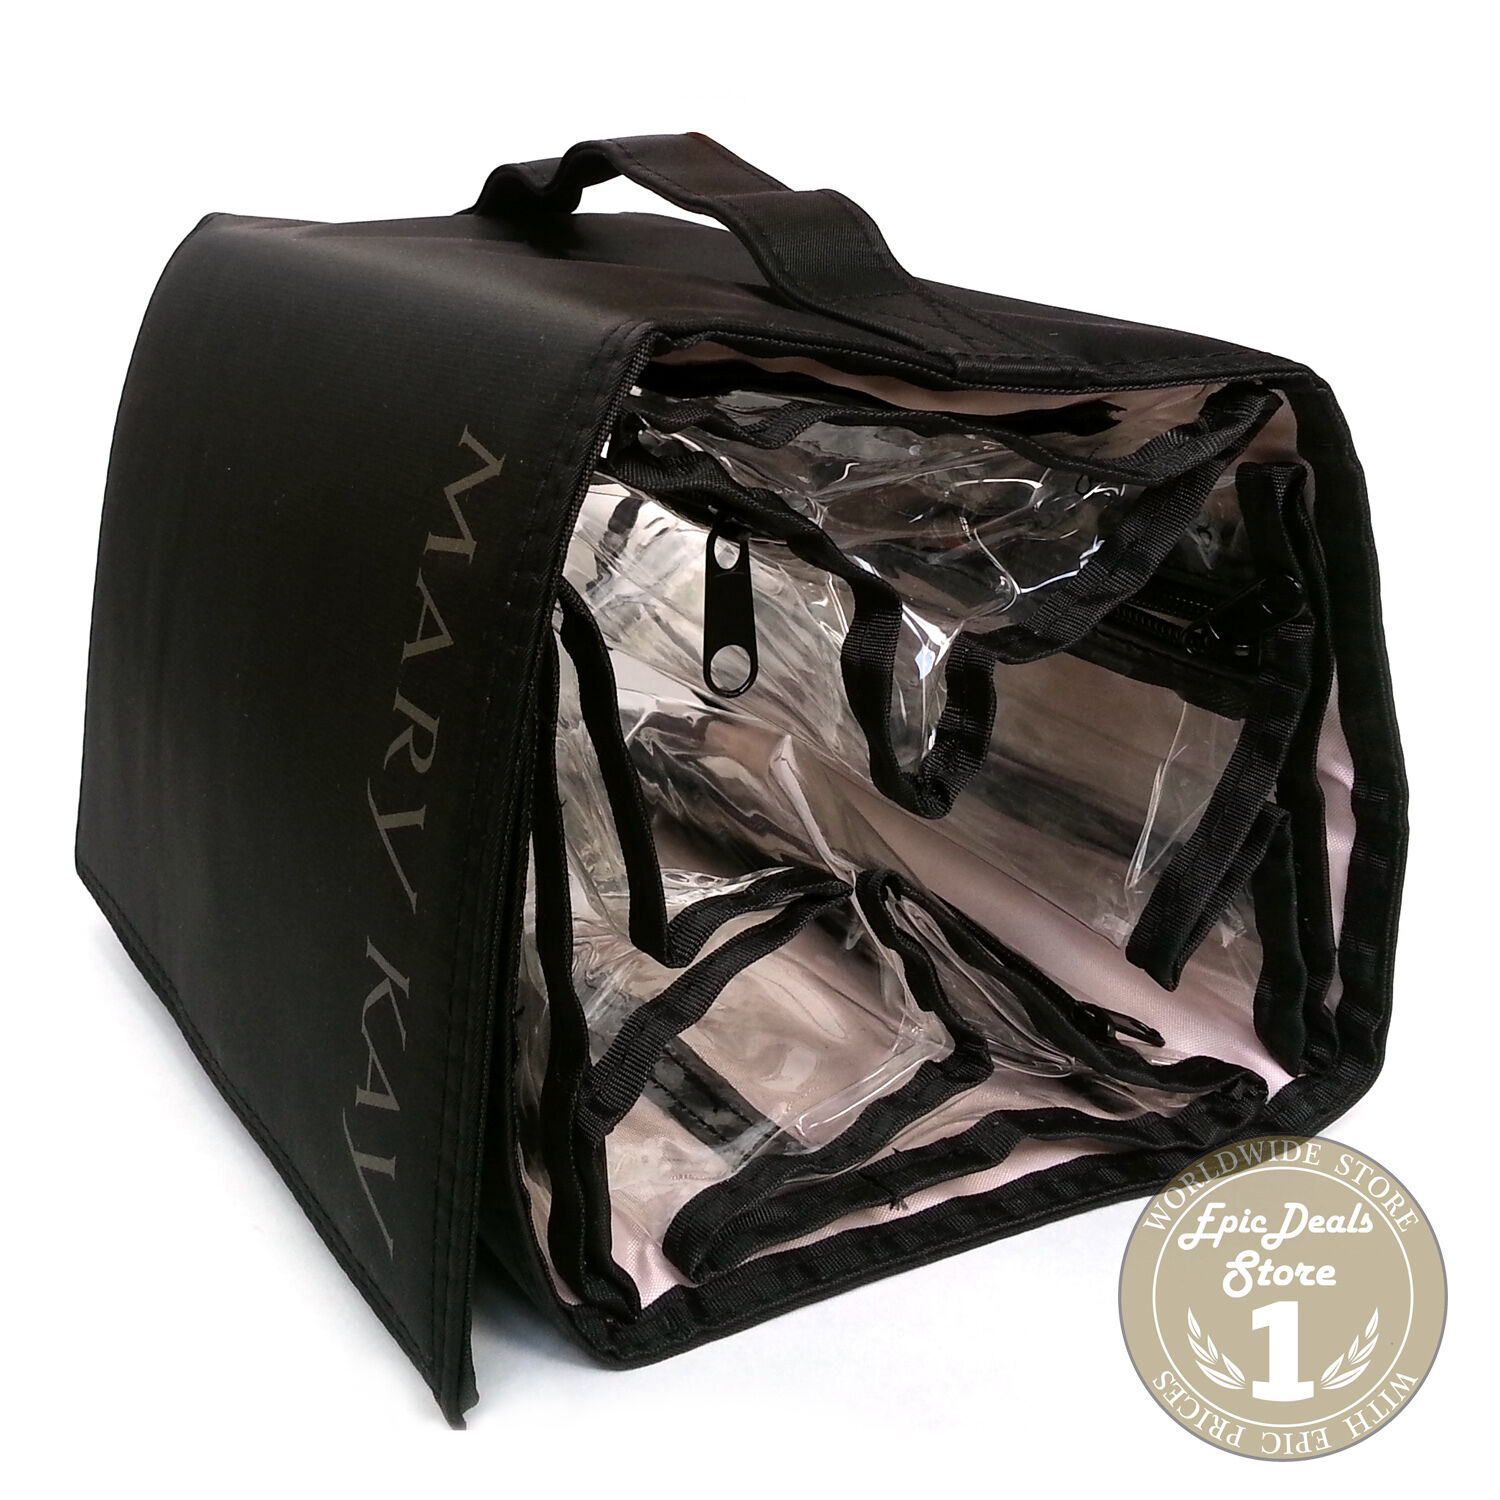 1 Of 4only Available Mary Kay Travel Roll Up Bag Cosmetic Organizer Black Hanging W Removable Pouches